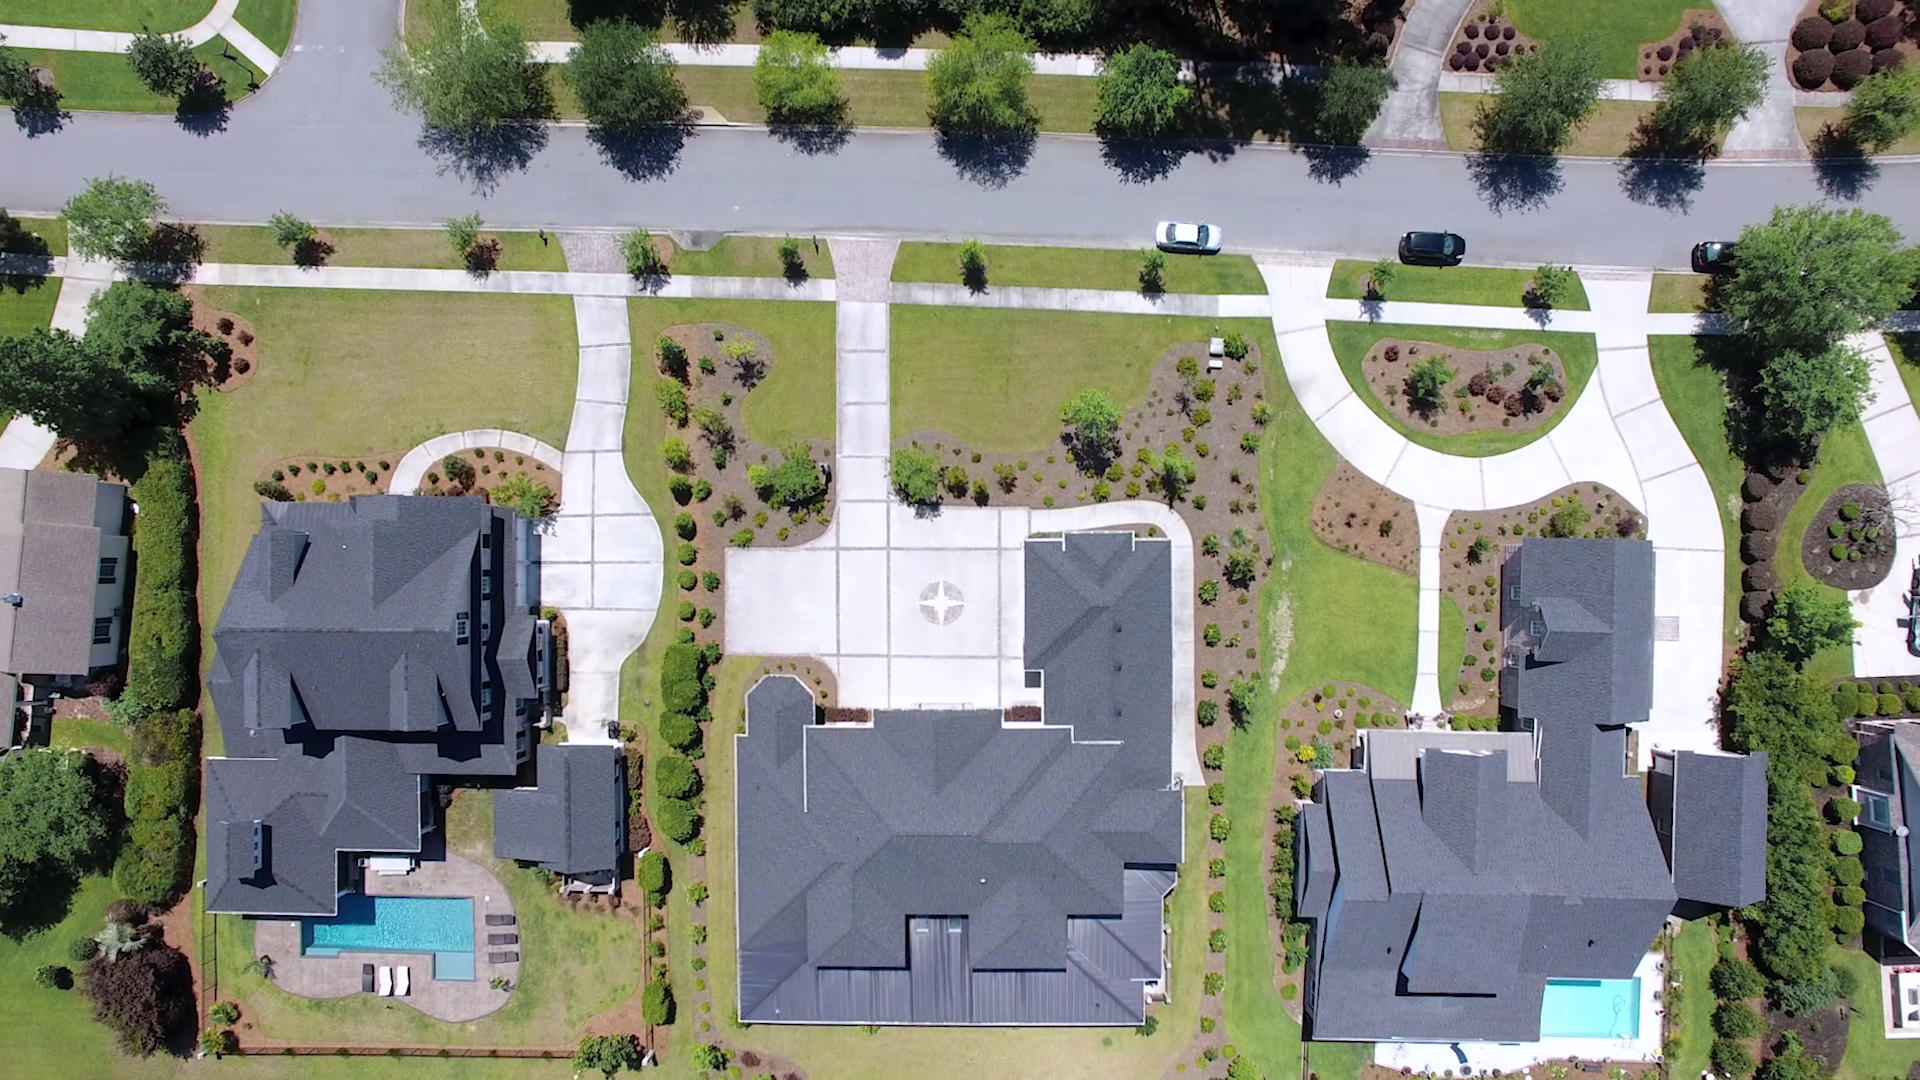 At Coastal Videography, - our licensed drone pilots and expert videographers partner with your real estate business to deliver beautiful videos showcasing real estate properties. Contact us today for a quote.